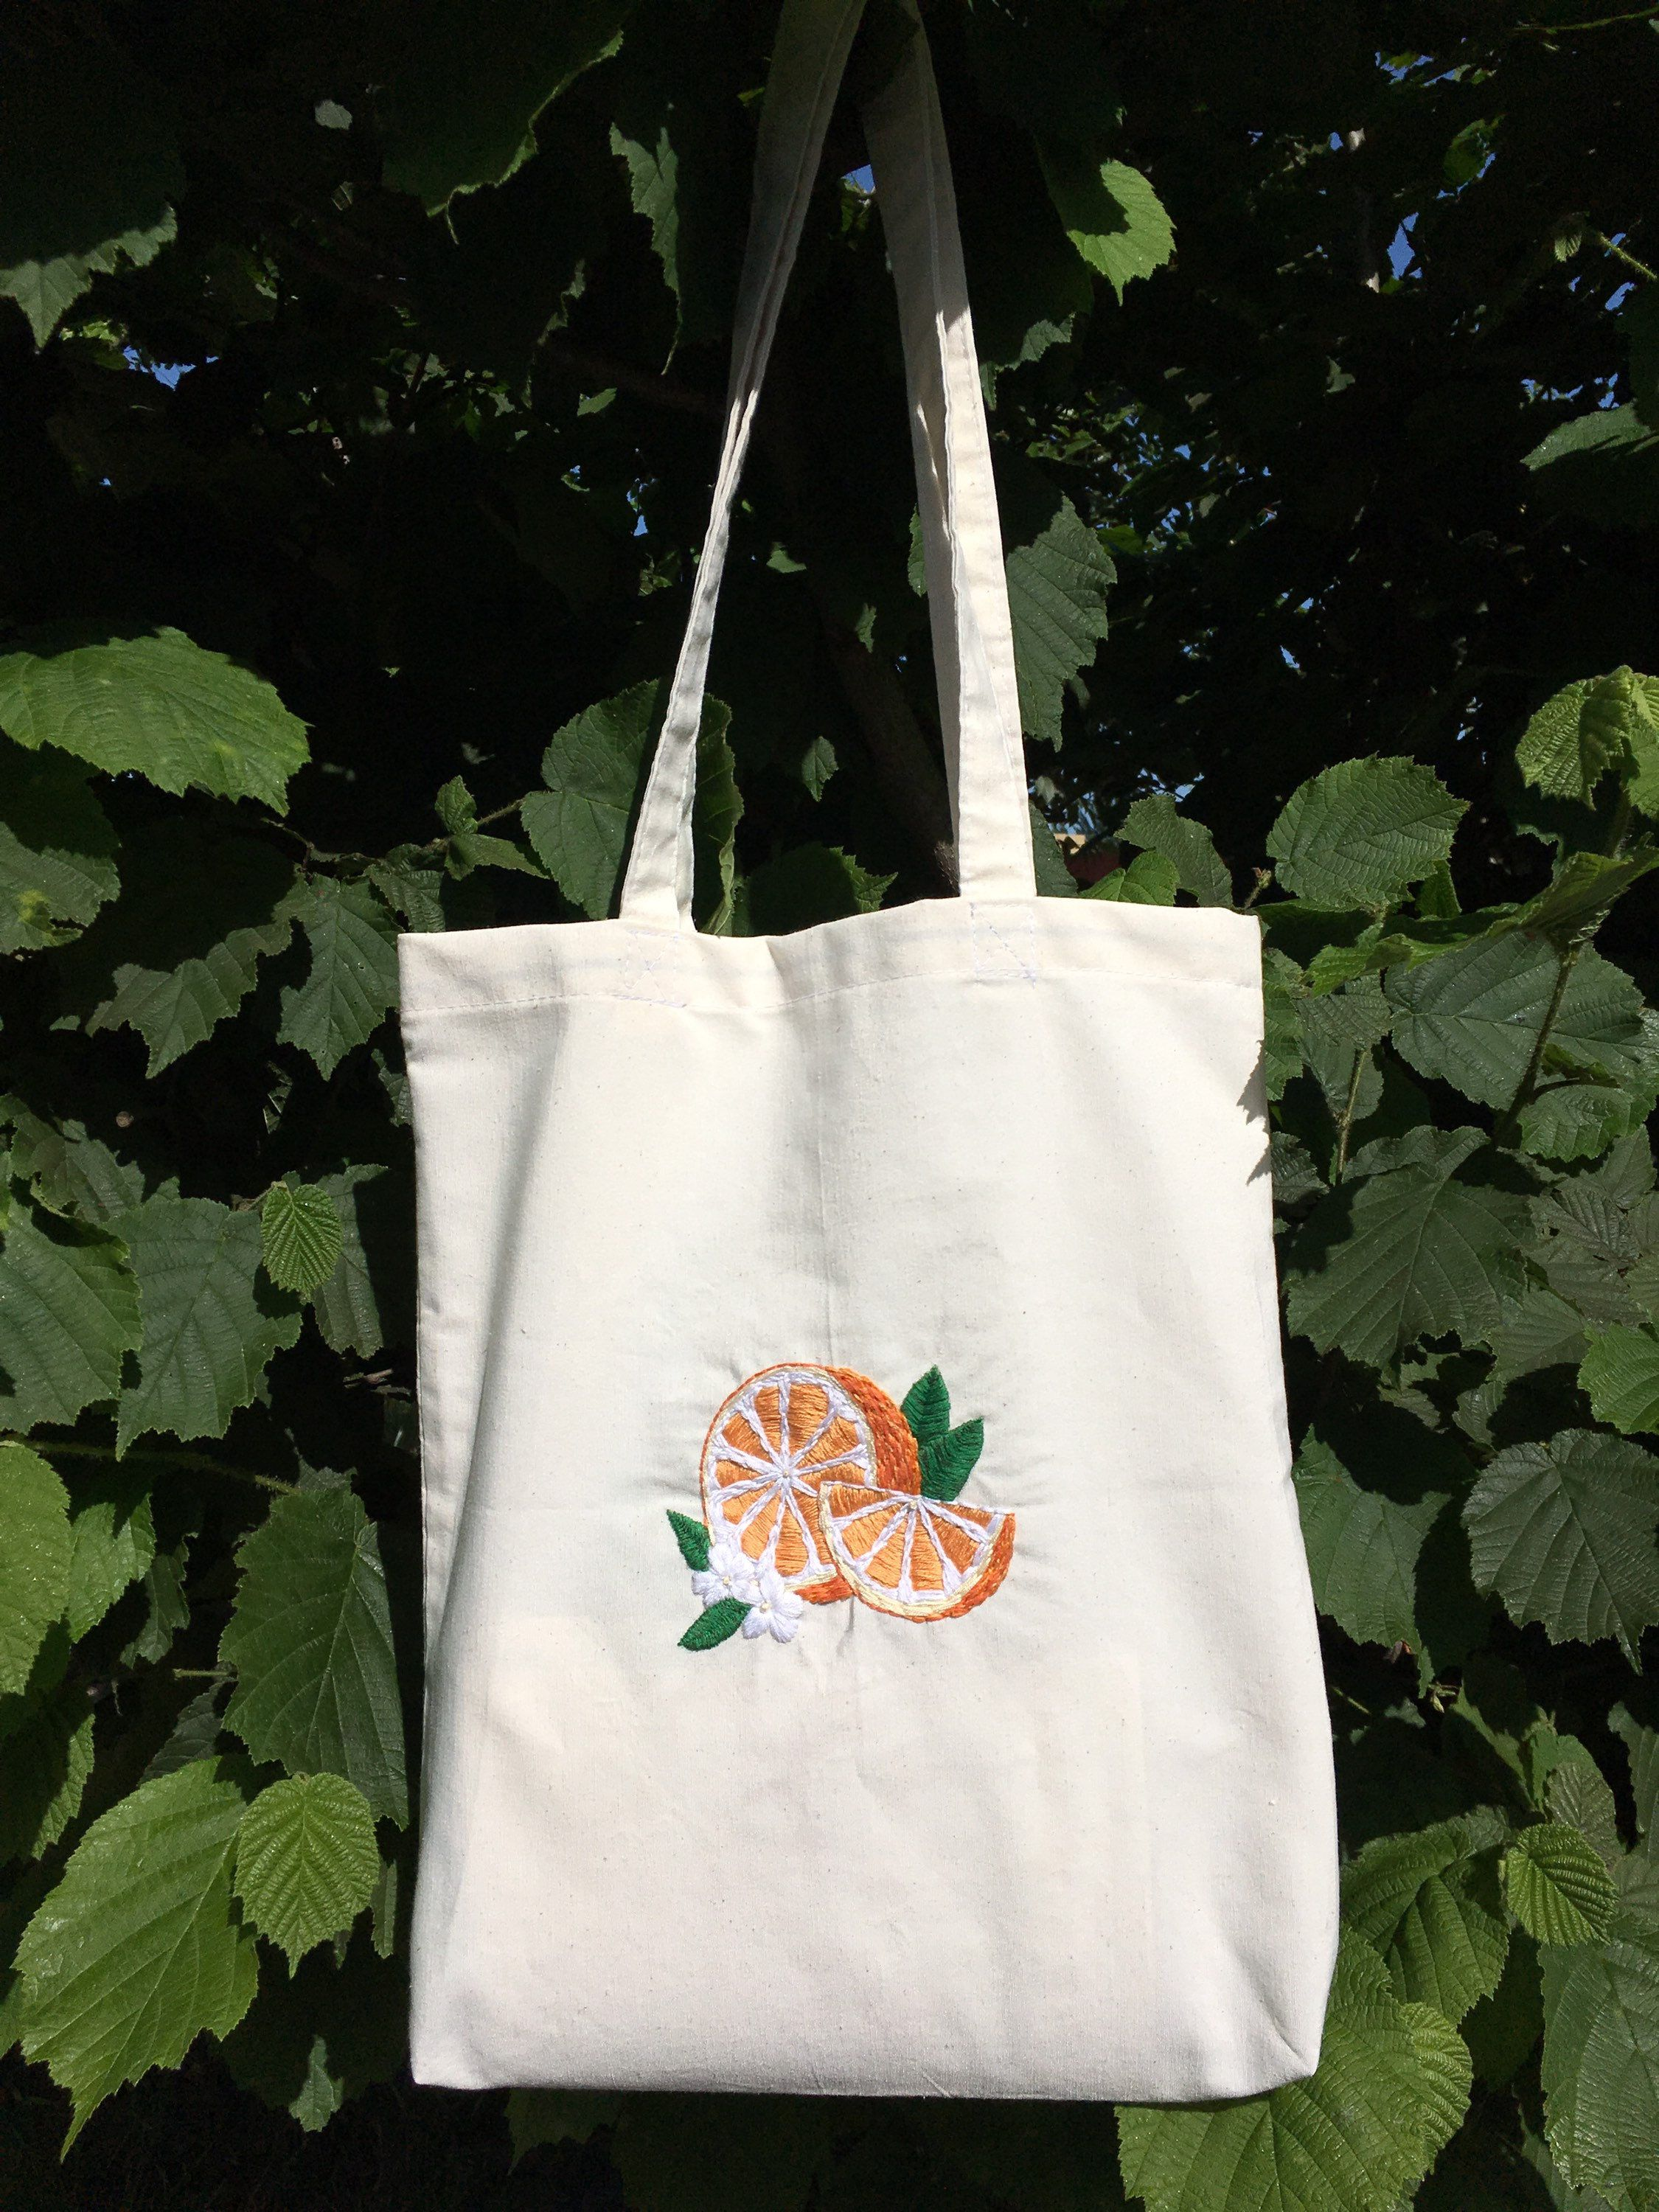 Orange Tote Bag Reusable Grocery Bag Cloth Tote Bag Etsy In 2020 Cloth Tote Bag Embroidery Bags Orange Tote Bags